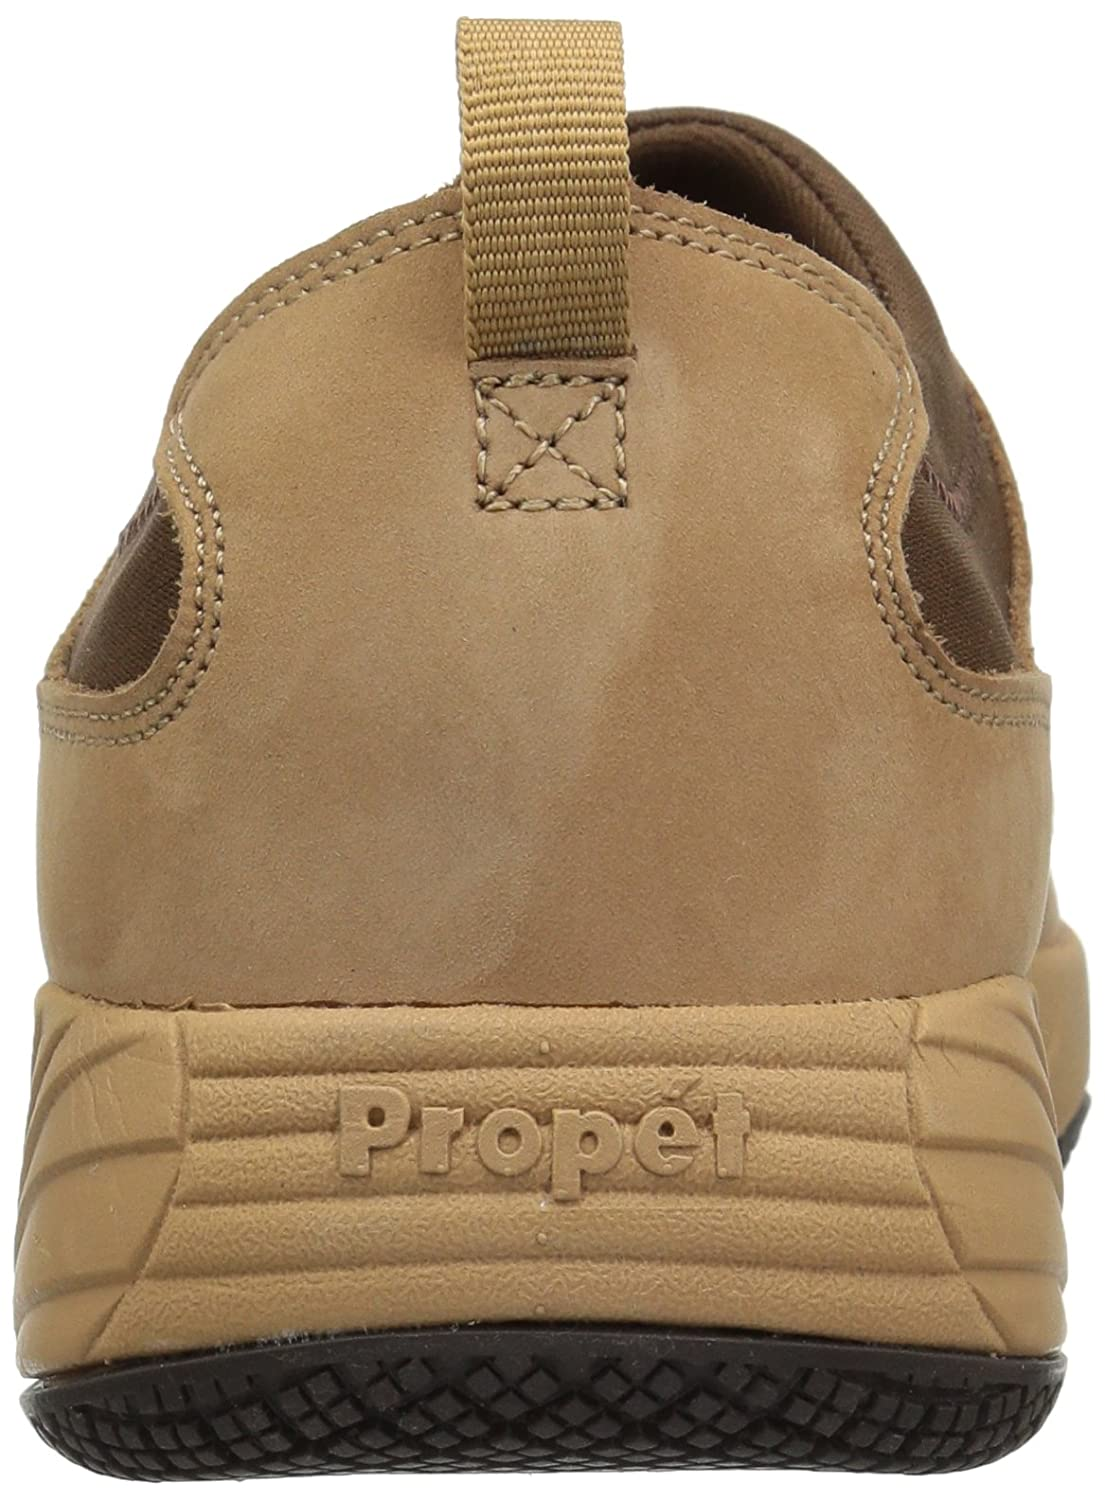 Propet Women's Wash N Wear Slip on Ll Walking Shoe B06XSBD7C1 6.5 W US|Sr Mushroom Nubuck